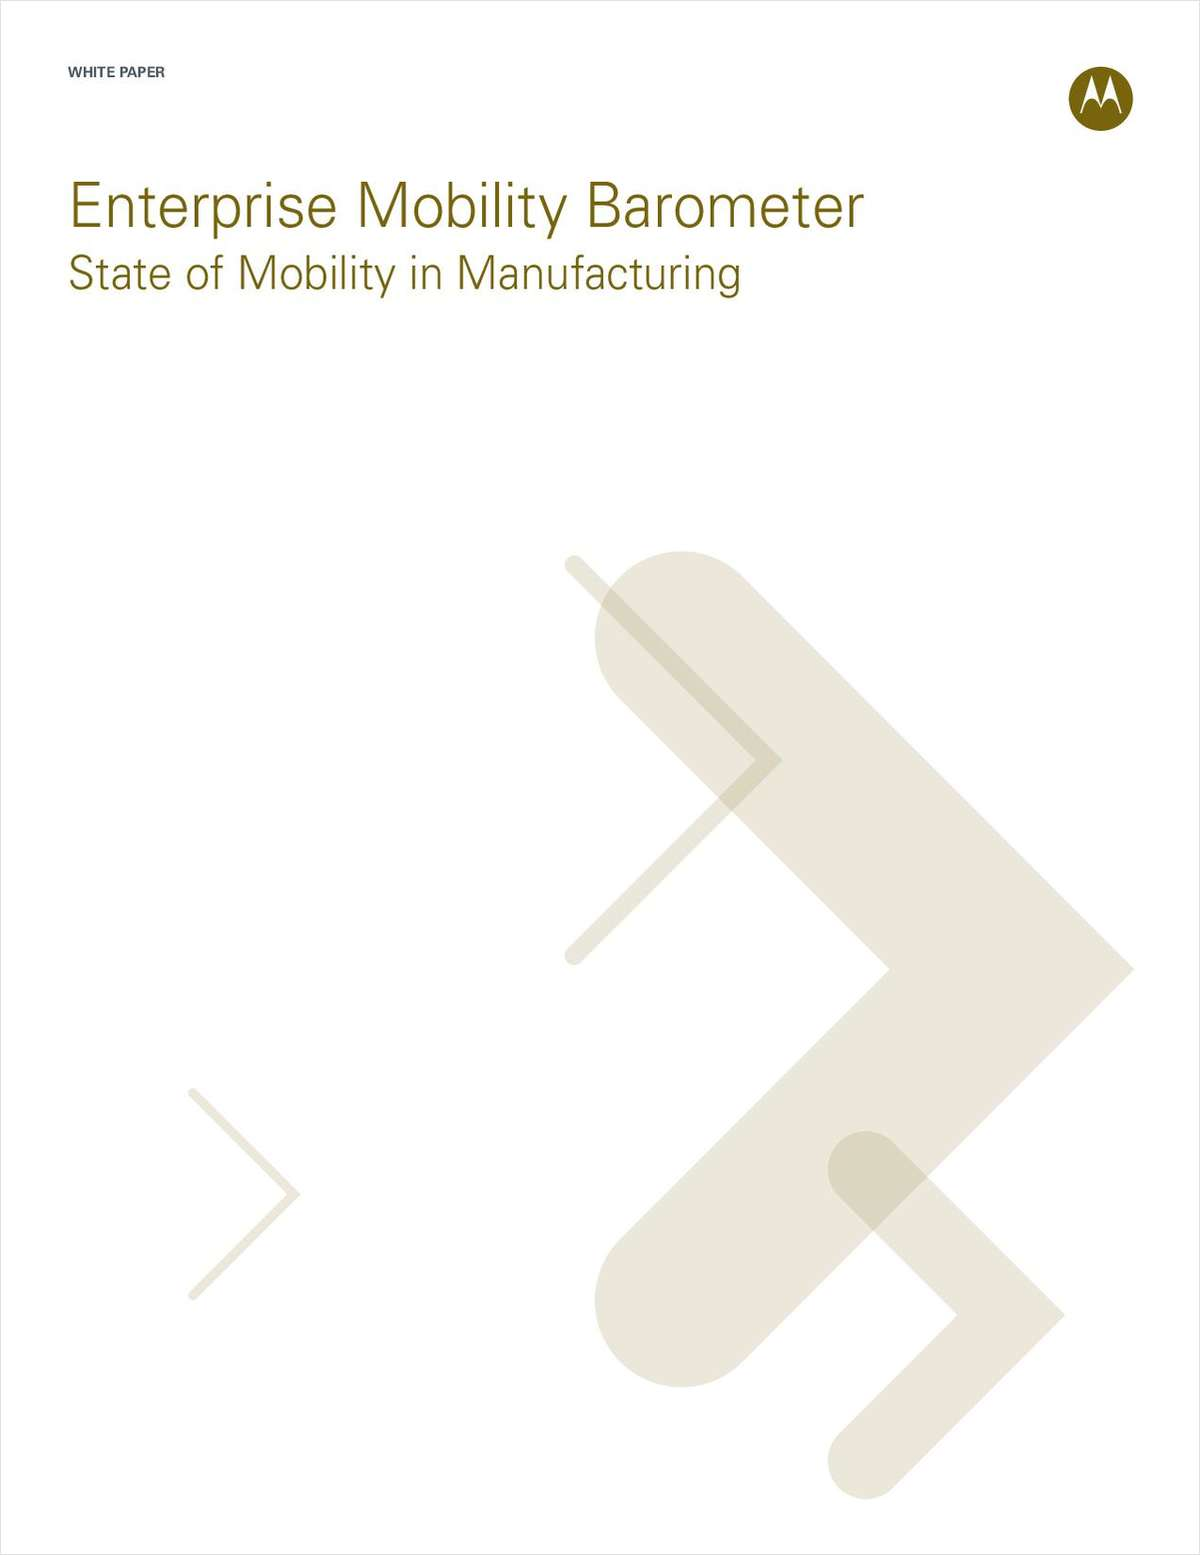 Enterprise Mobility Barometer - State of Mobility in Manufacturing